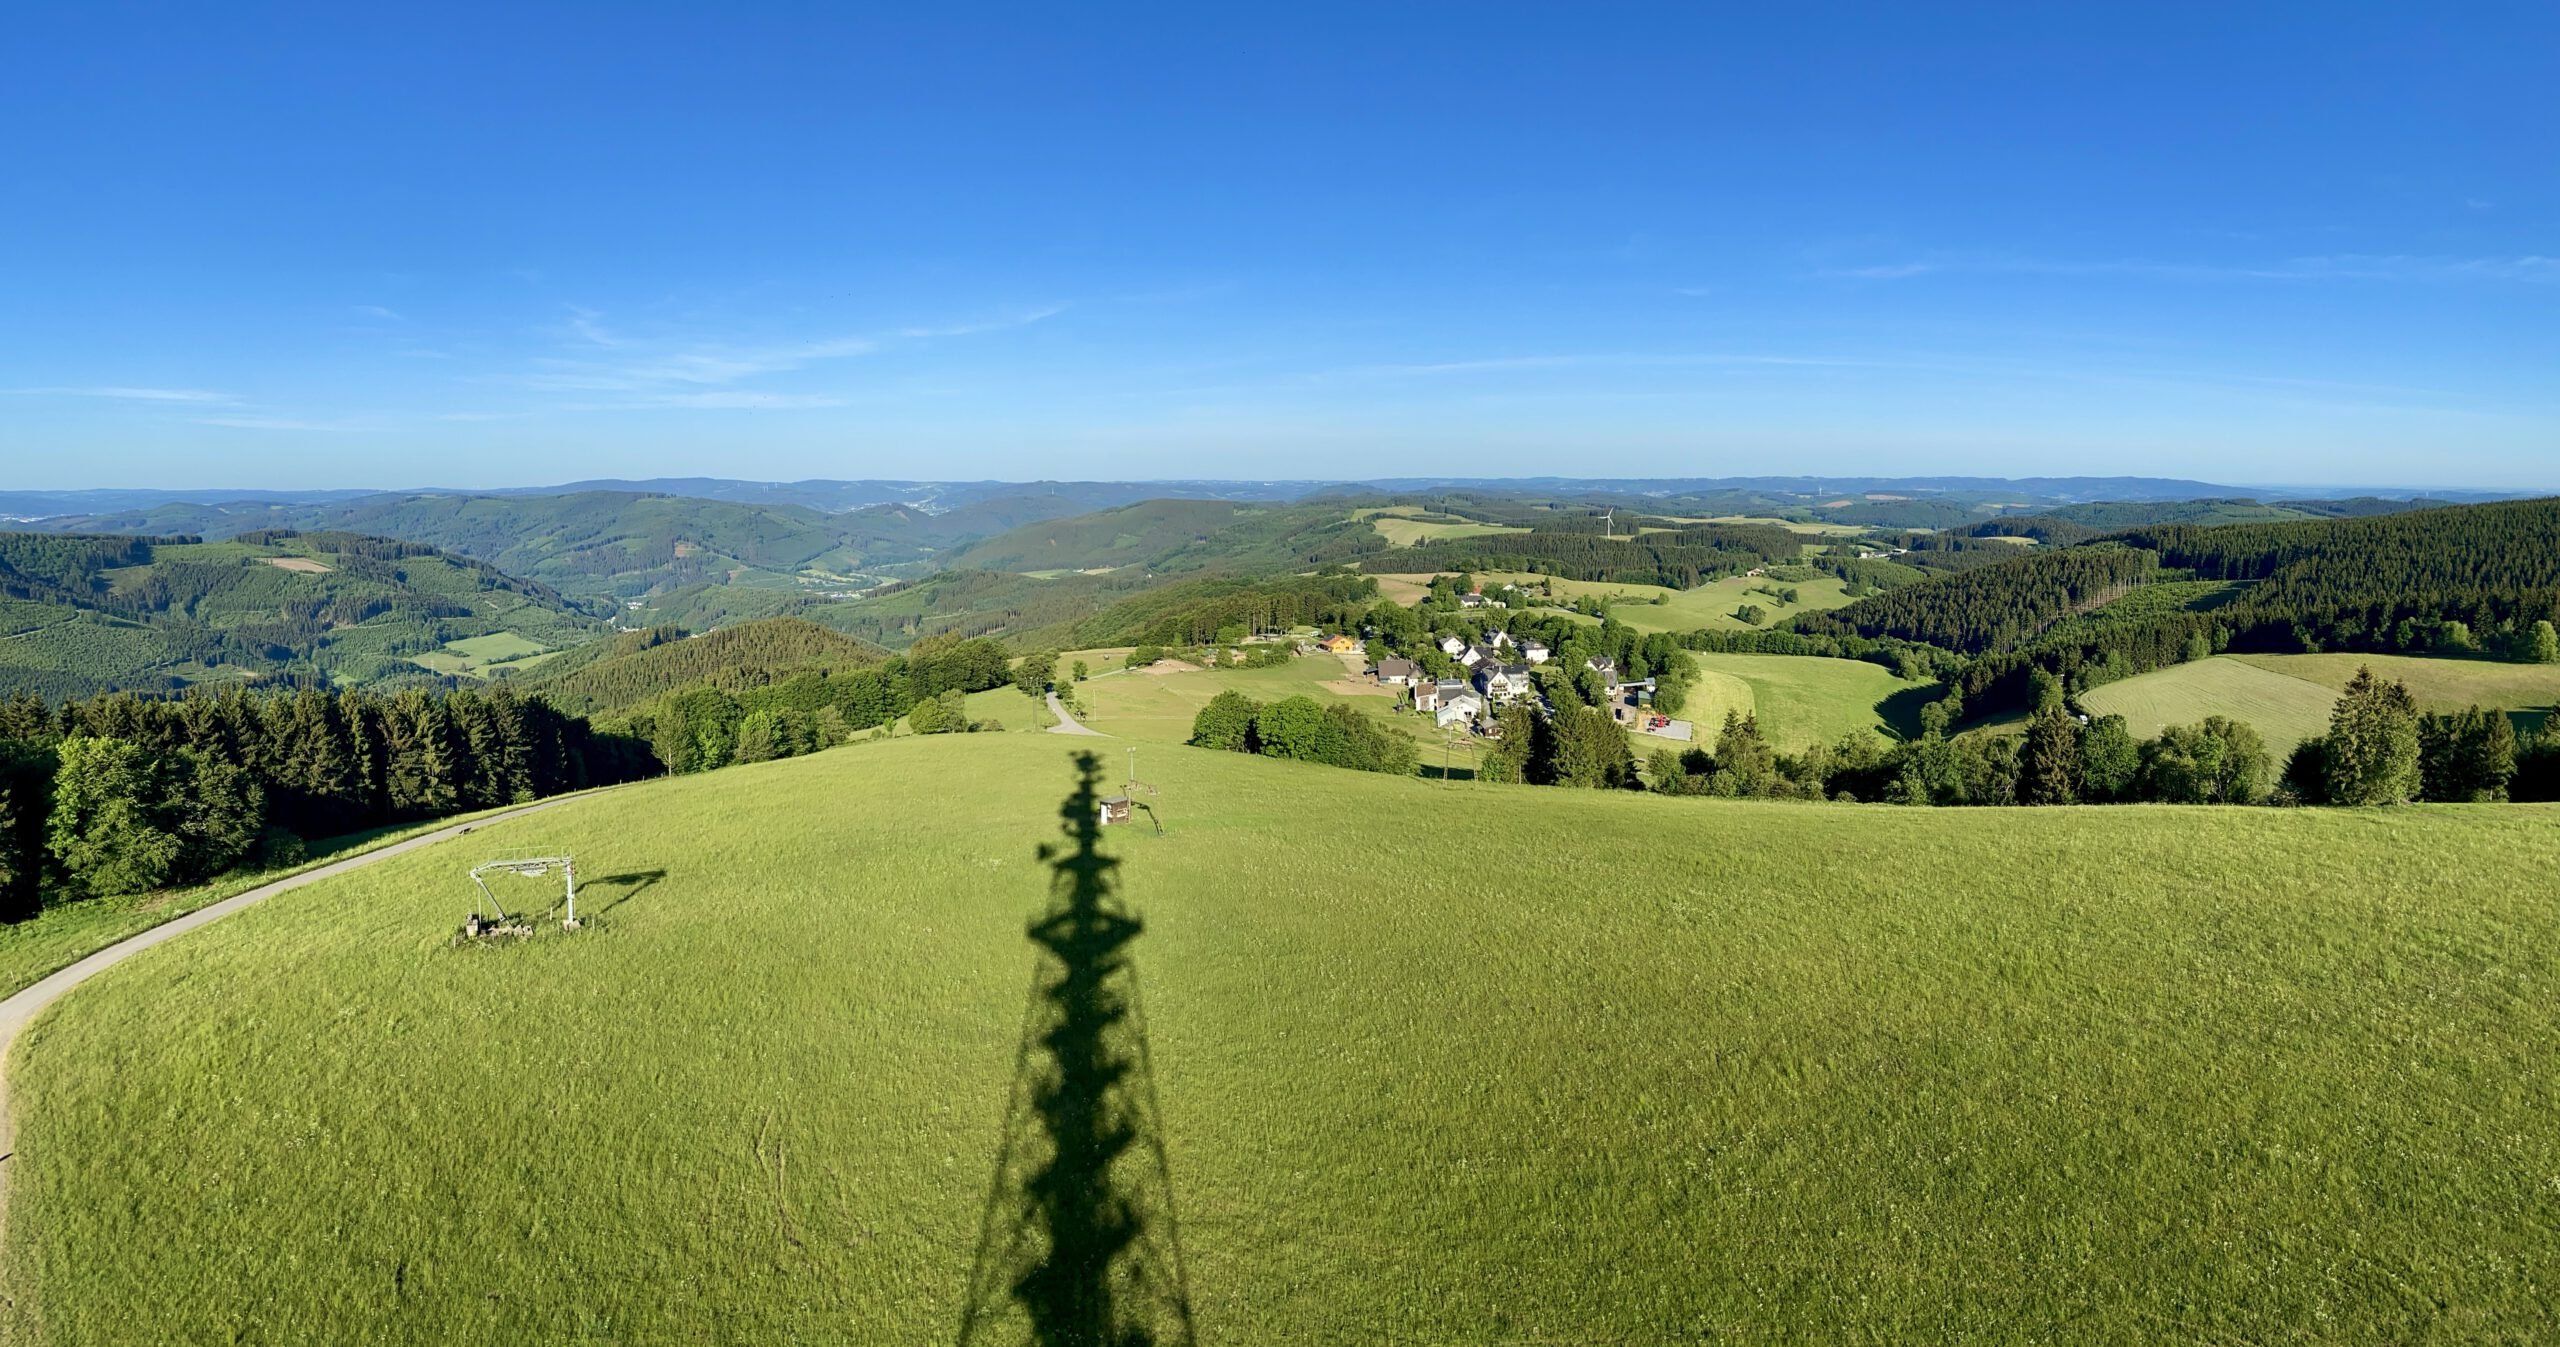 view from the Schomberg tower